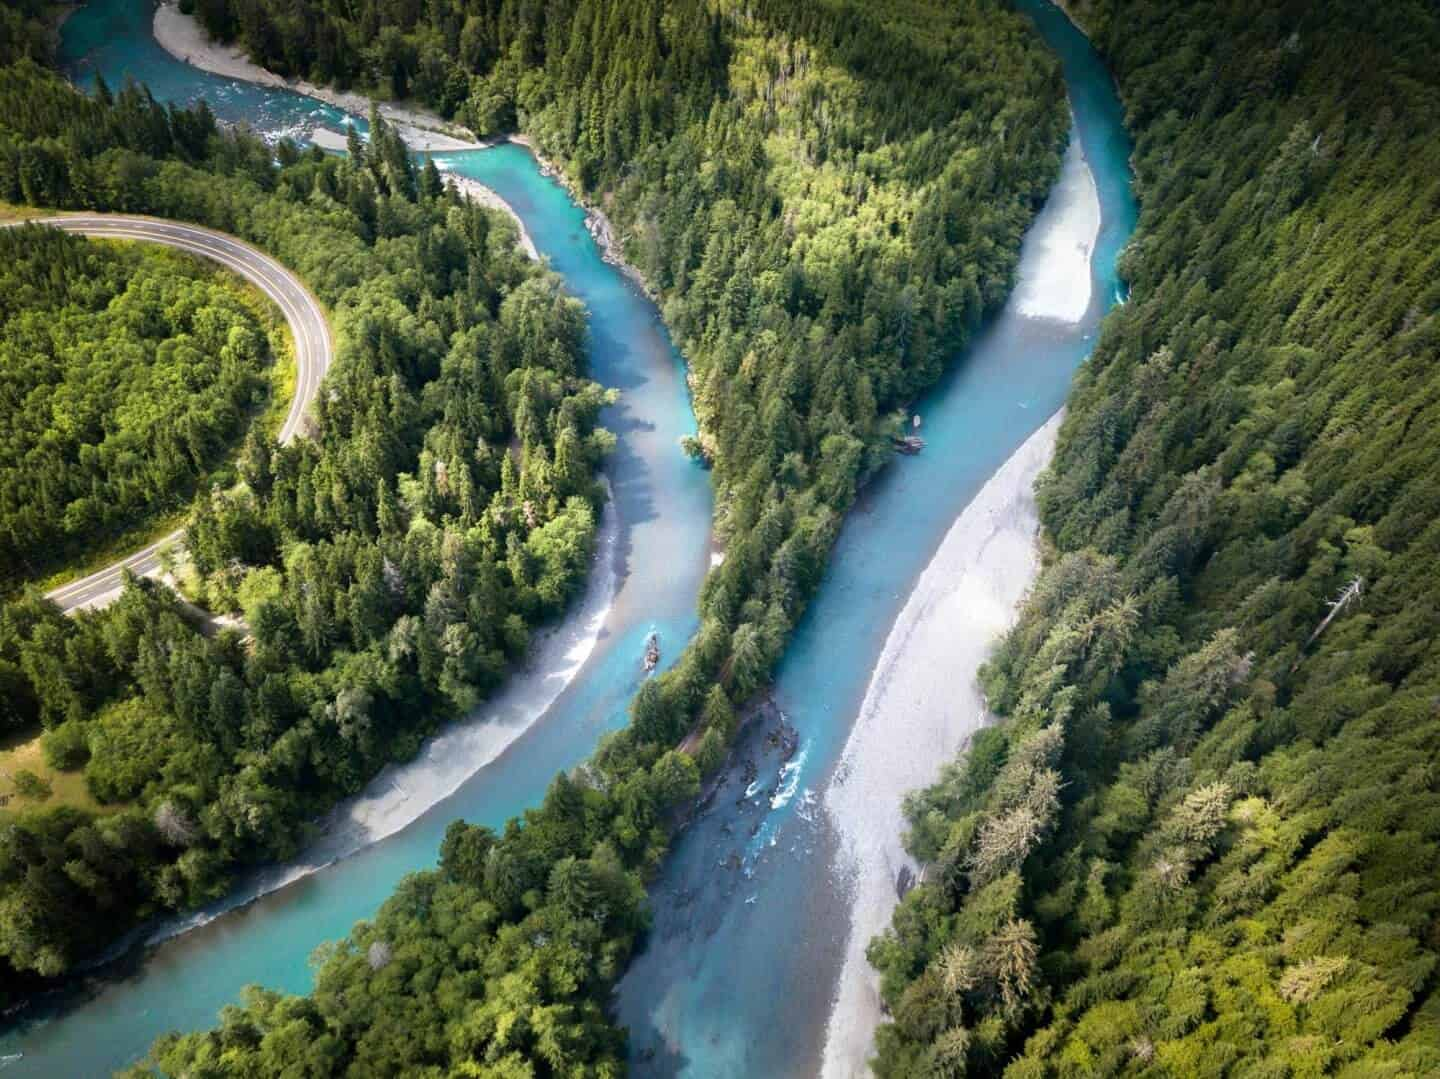 Aerial photography of the Queets River, Olympic National Park, Washington